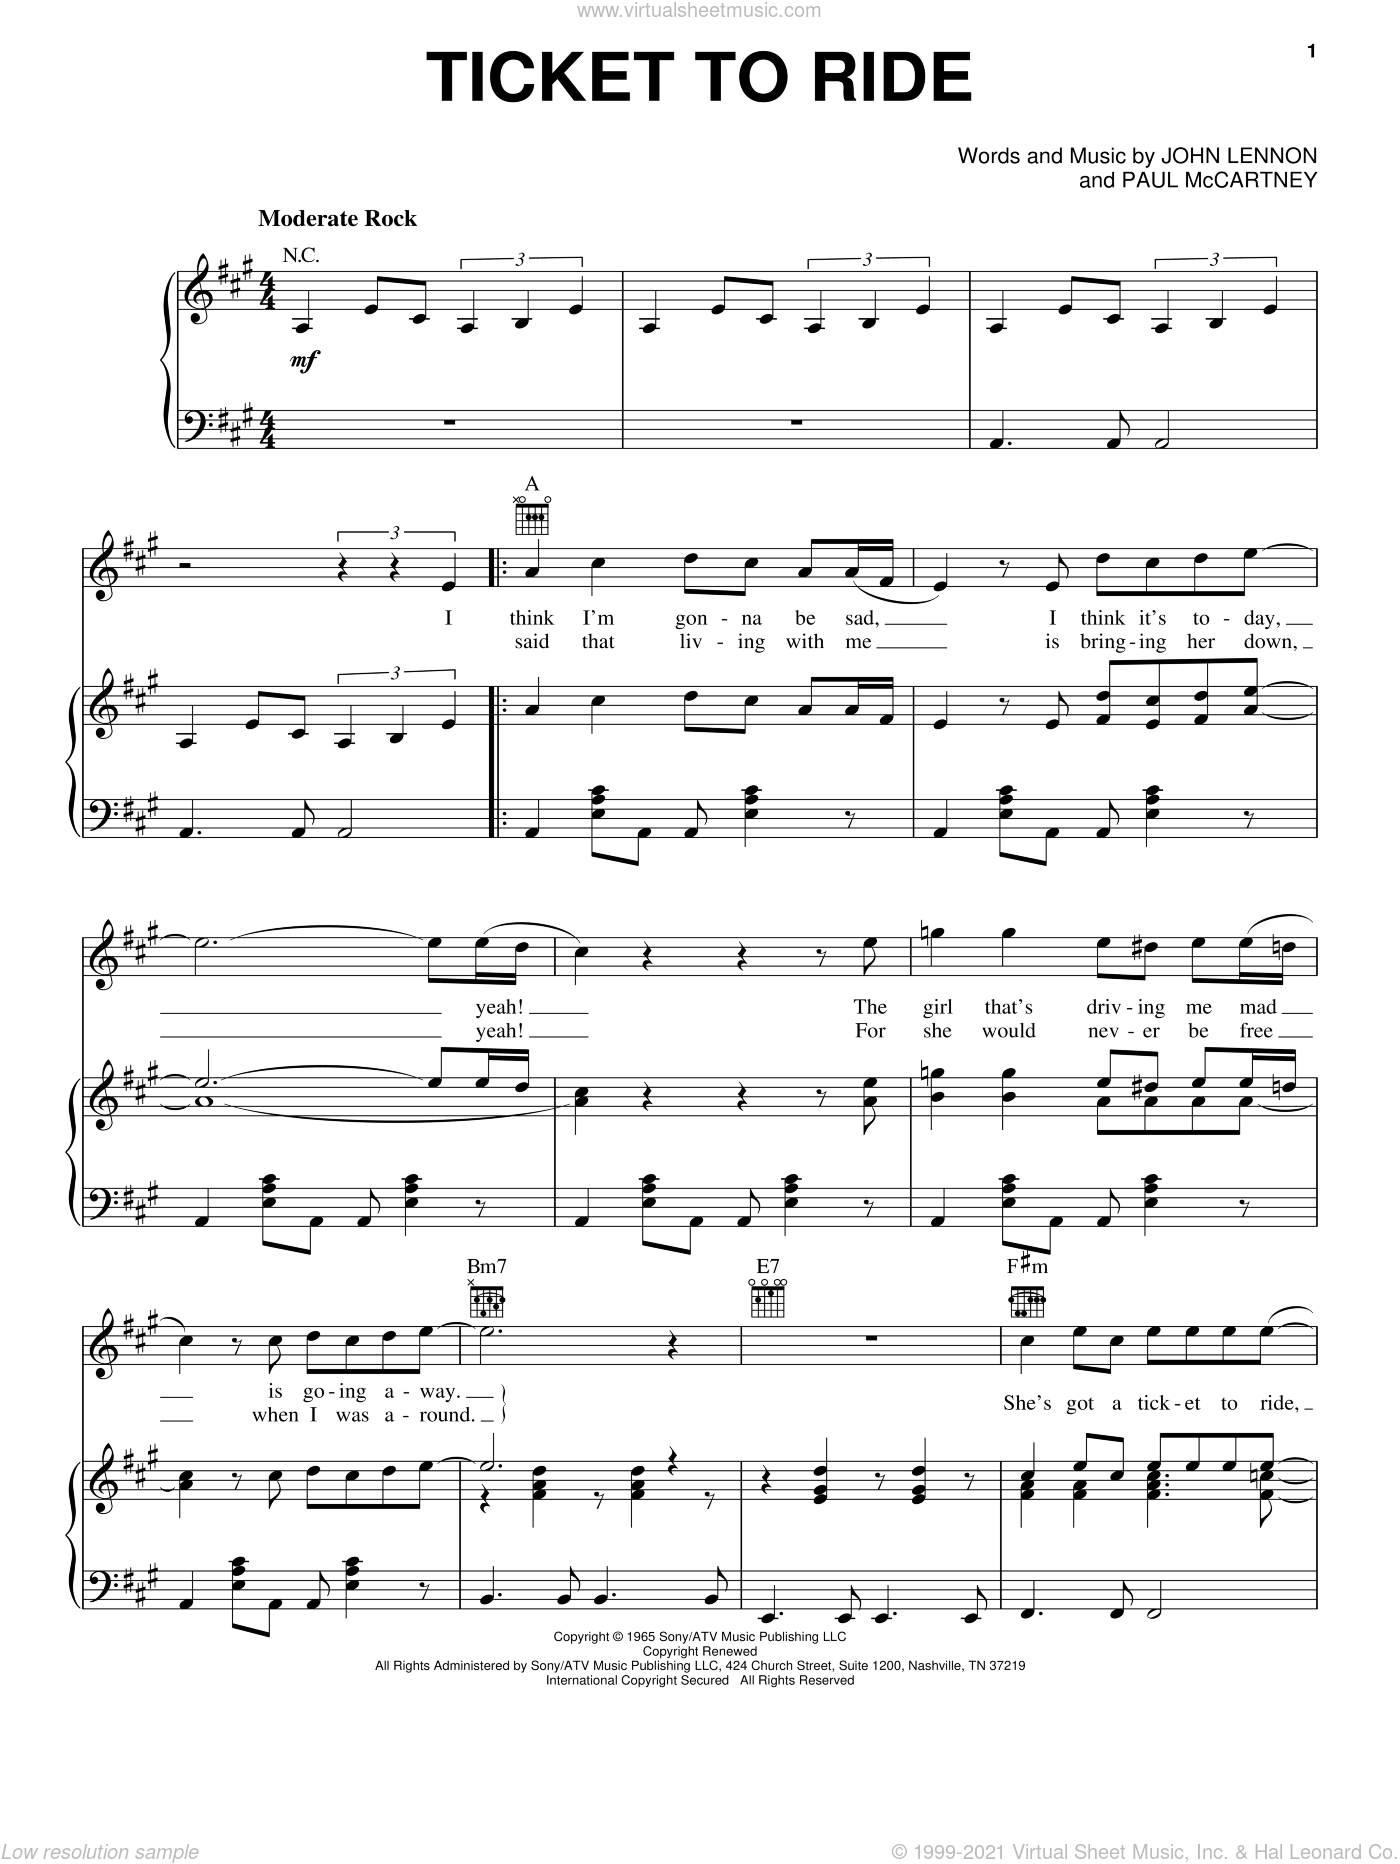 Ticket To Ride sheet music for voice, piano or guitar by The Beatles, John Lennon and Paul McCartney, intermediate skill level